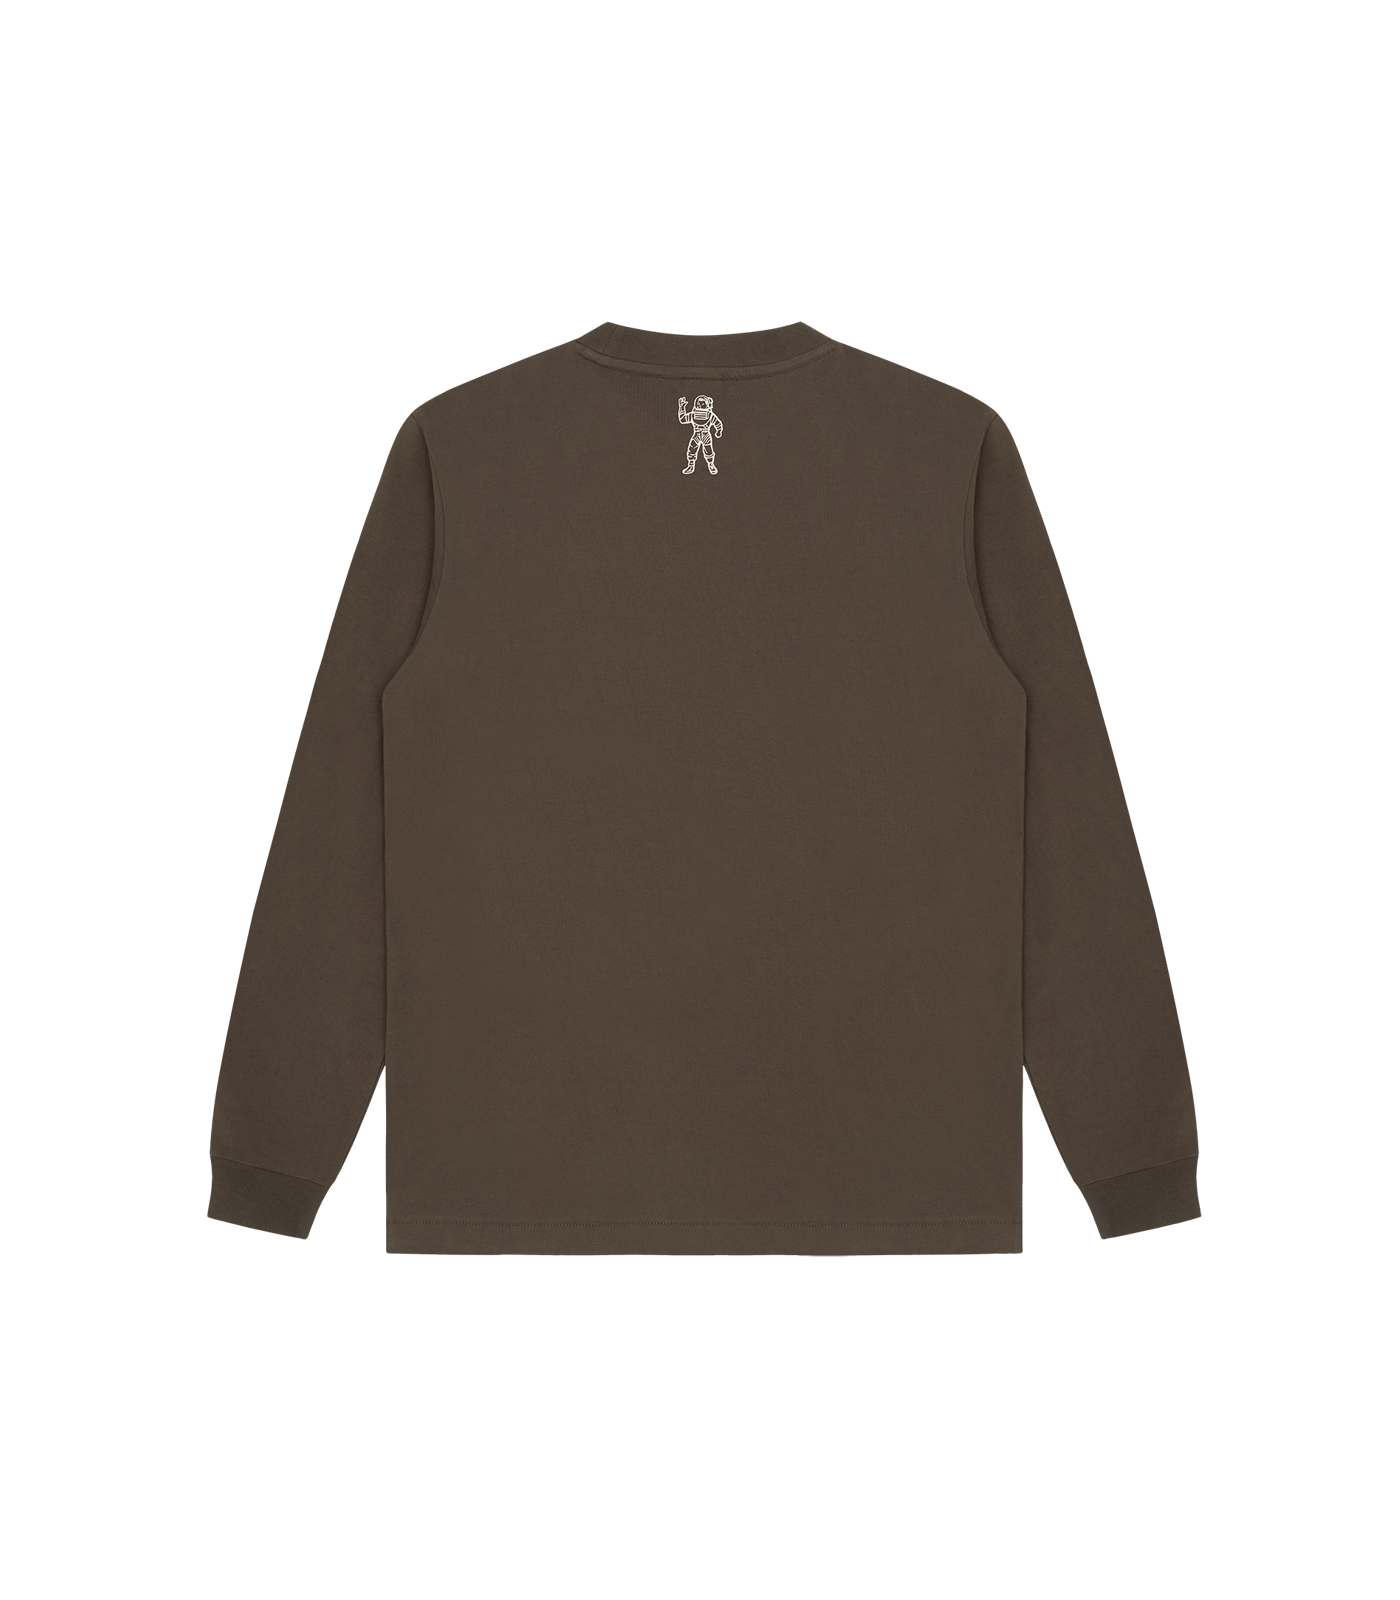 STRAIGHT LOGO L/S T-SHIRT - BROWN